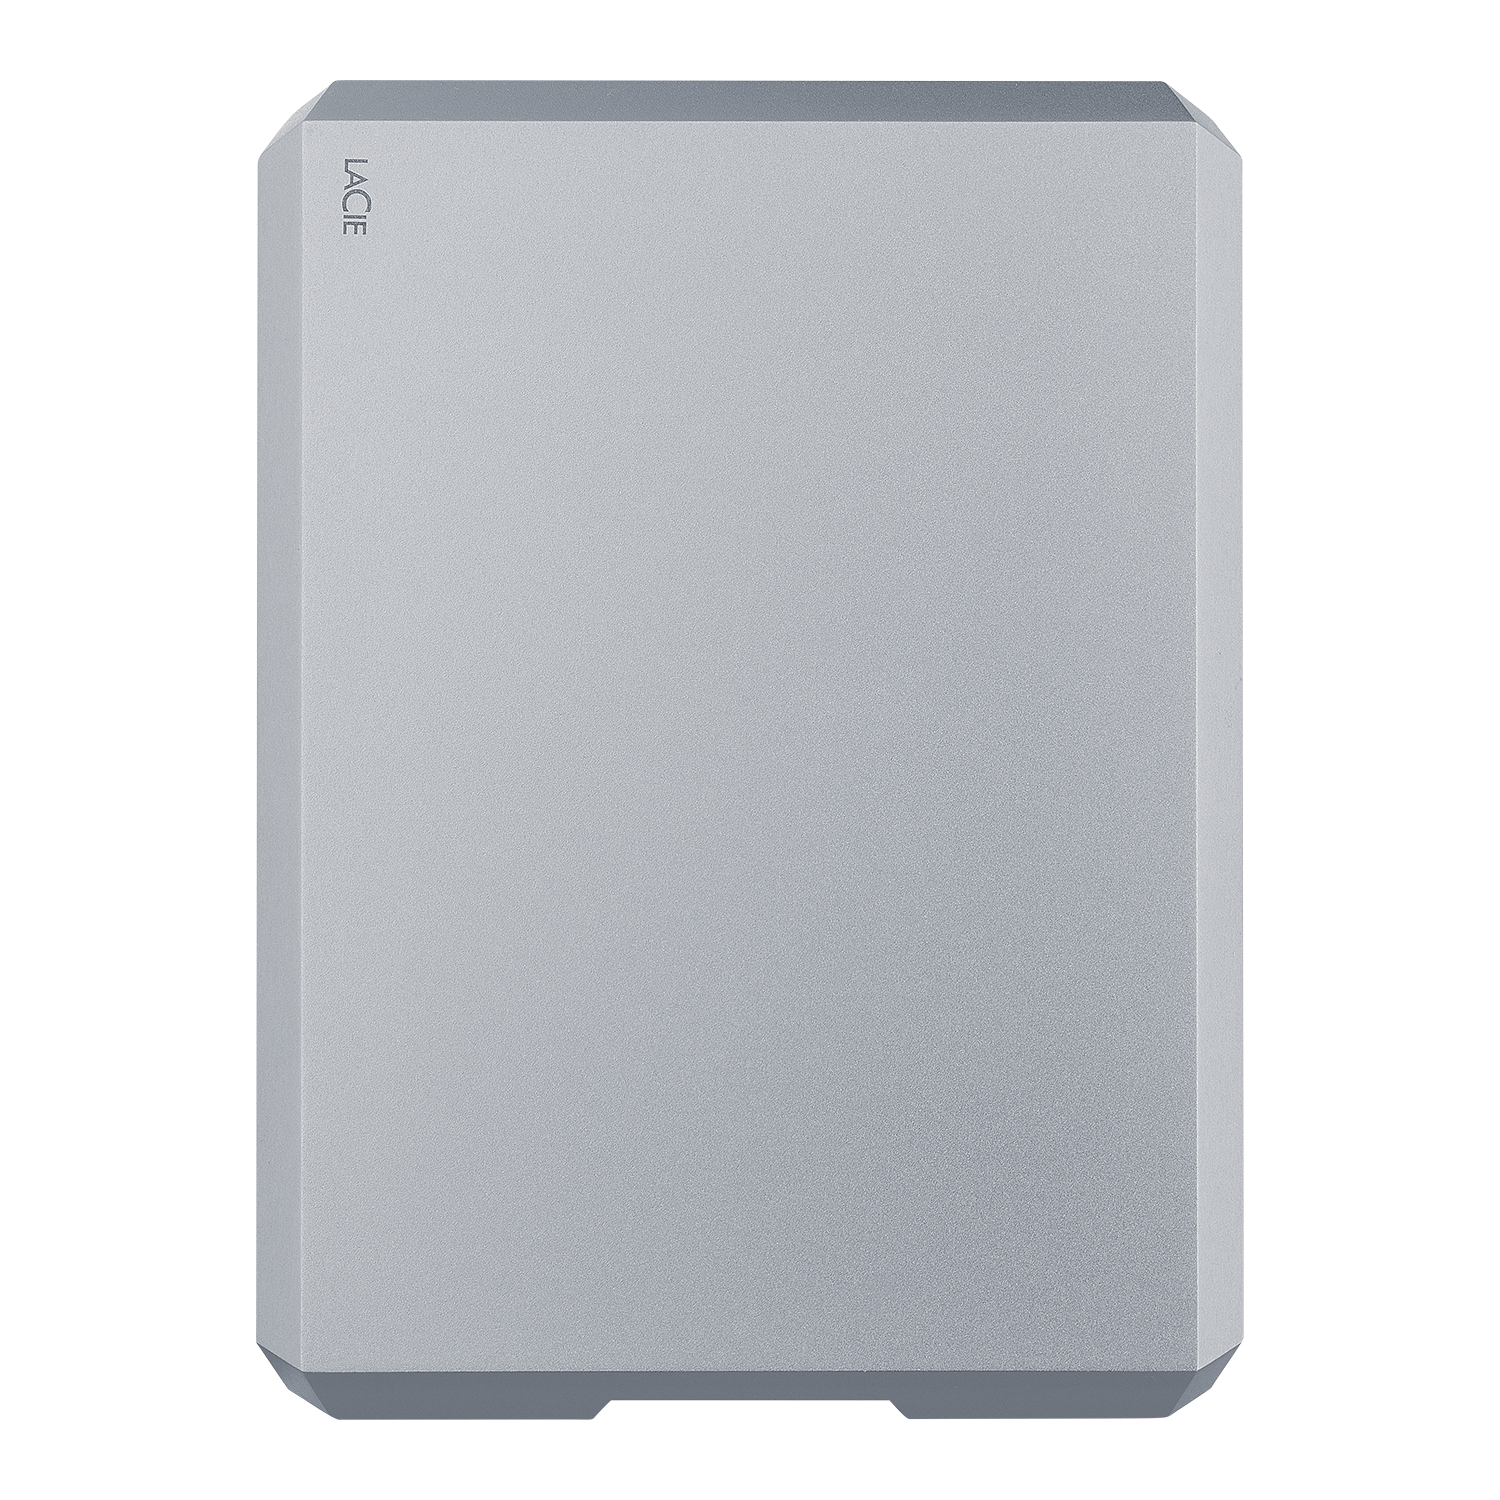 LaCie Mobile Drive tragbare externe Festplatte, 4TB, Space Gray